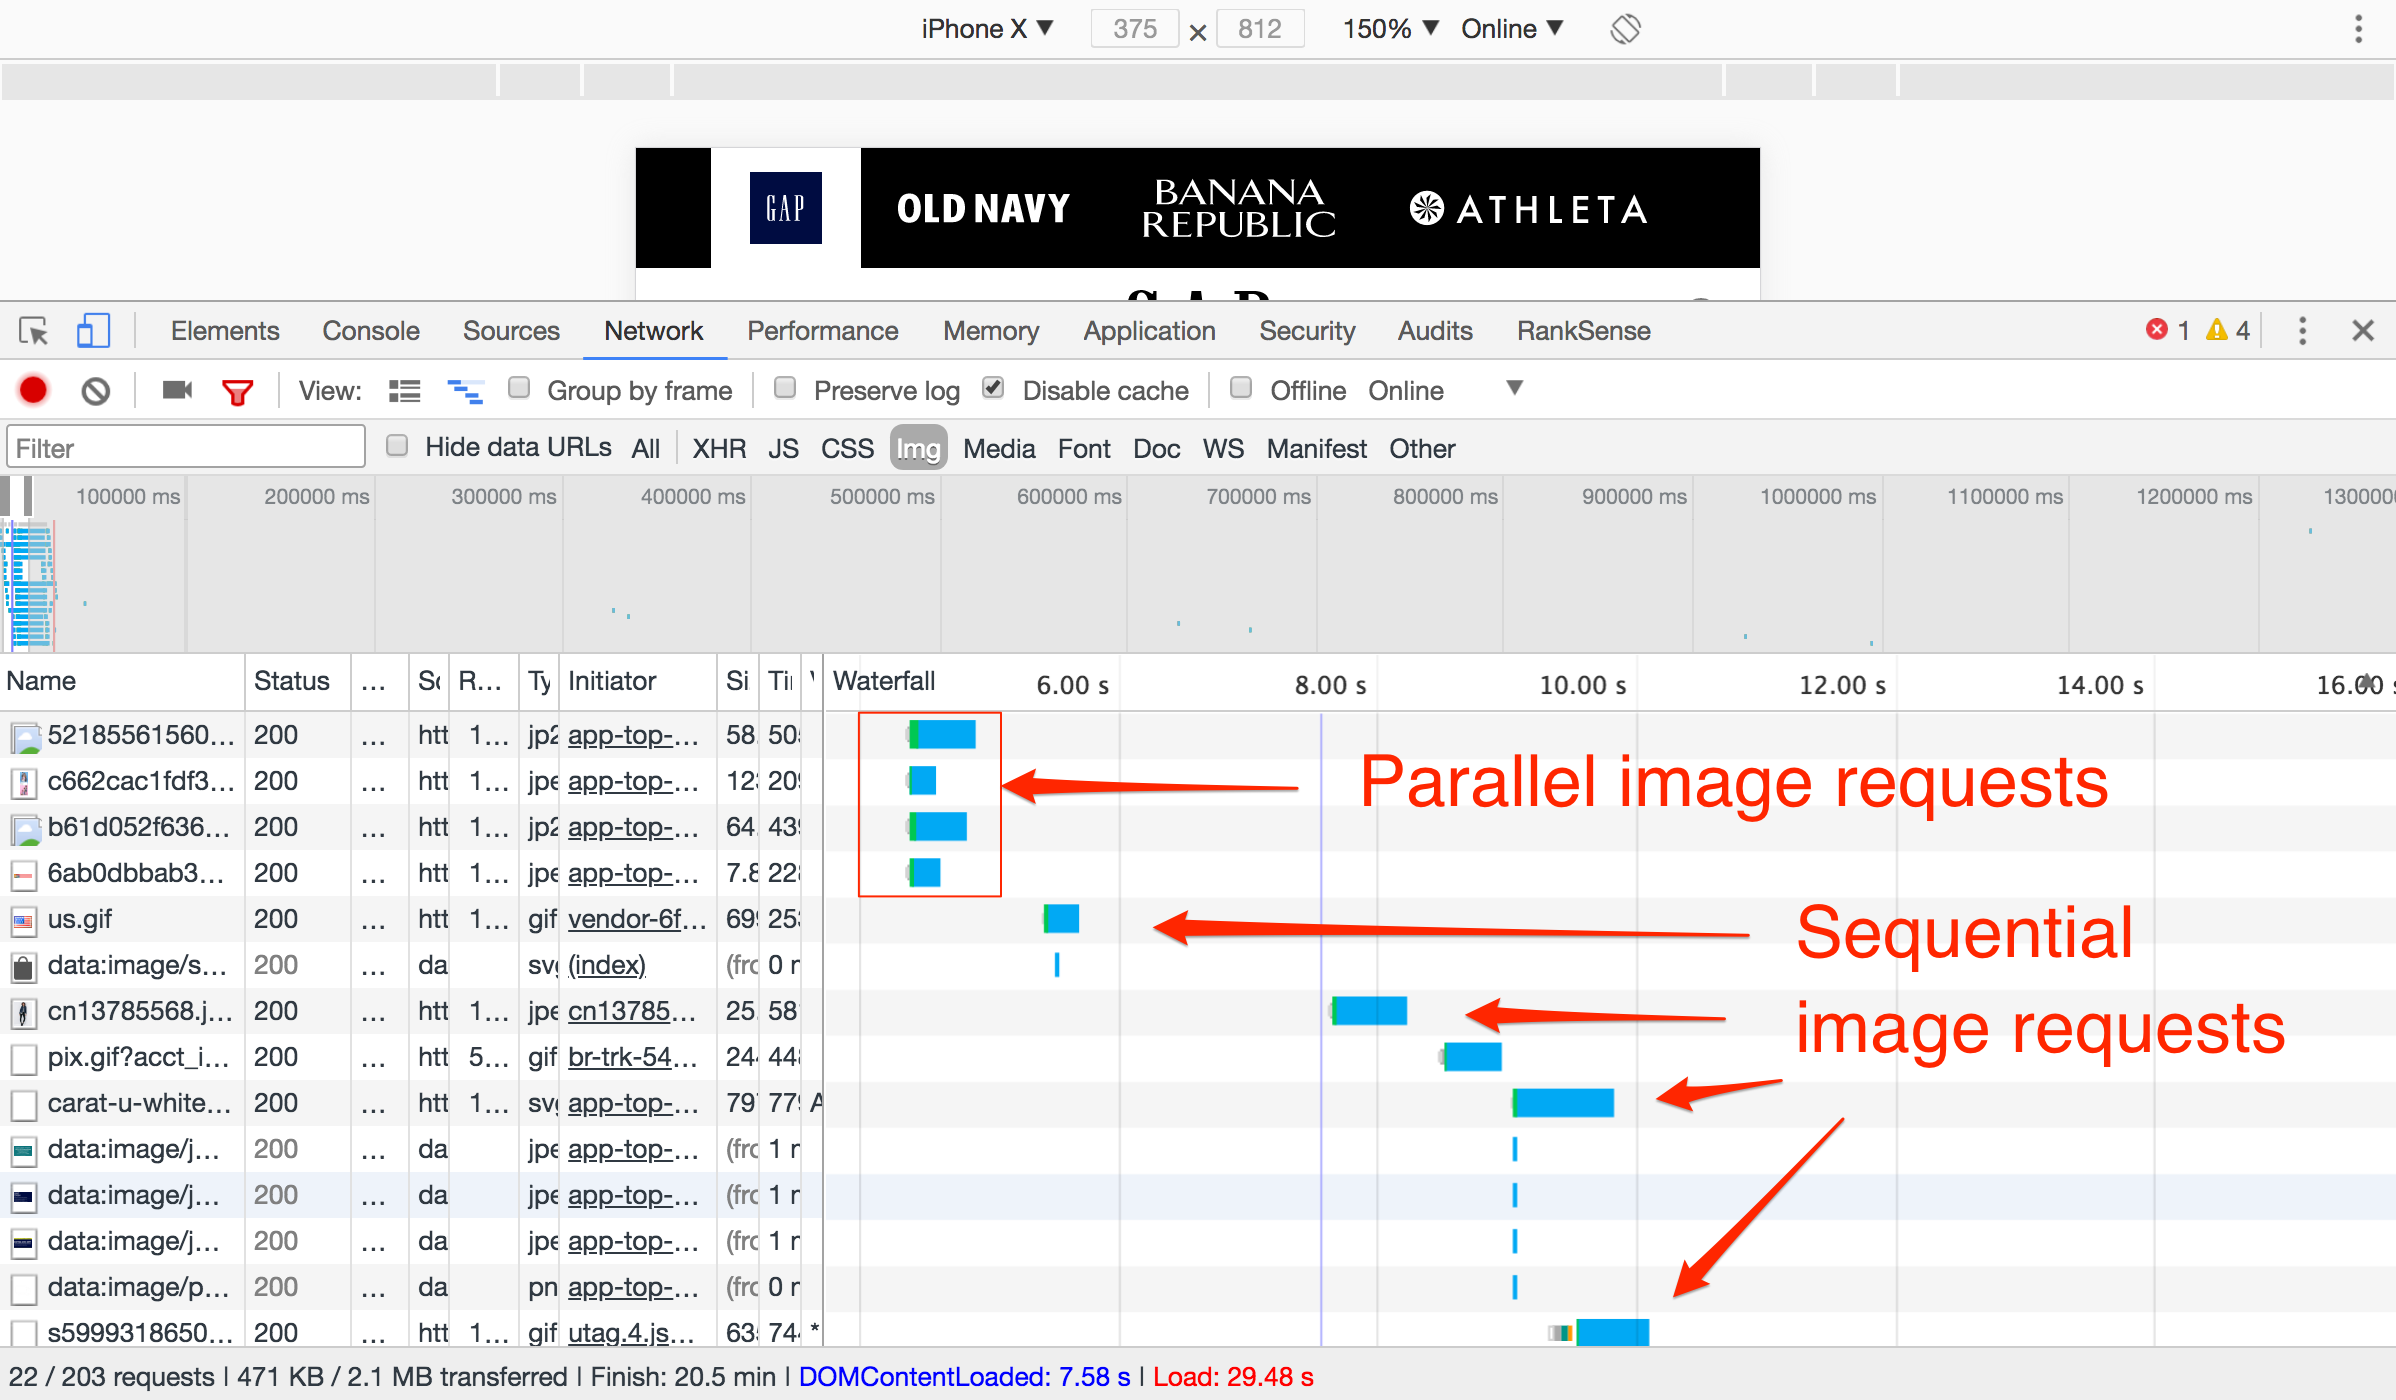 Image requests loading sequentially are causing the Gap mobile page to load very slowly.